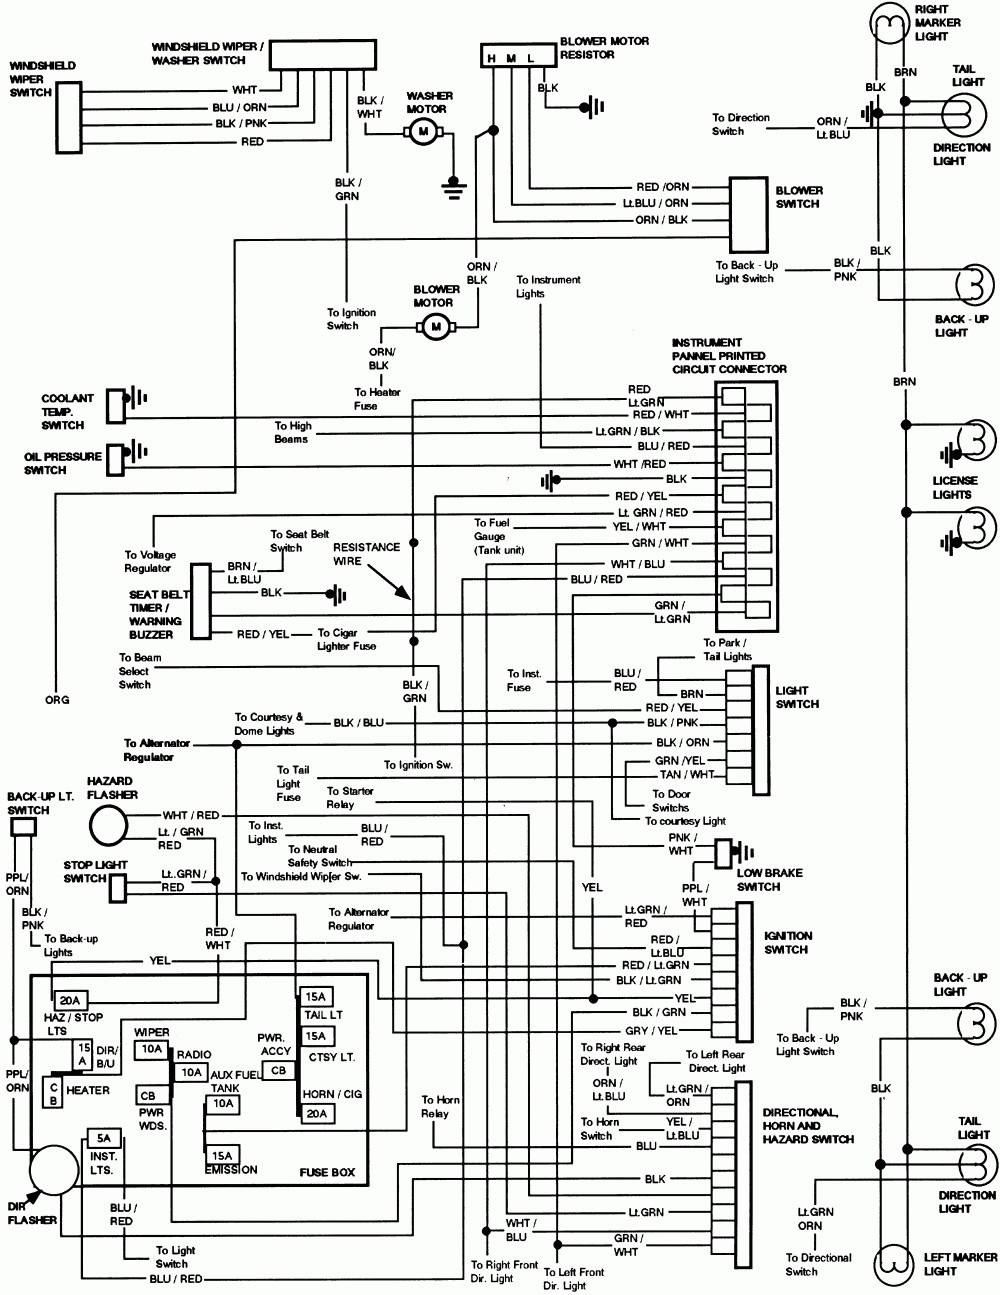 medium resolution of wiring diagrams furthermore 1989 ford f 250 fuel system diagram 1989 ford f150 ignition wiring furthermore ford f 150 fuel pump driver